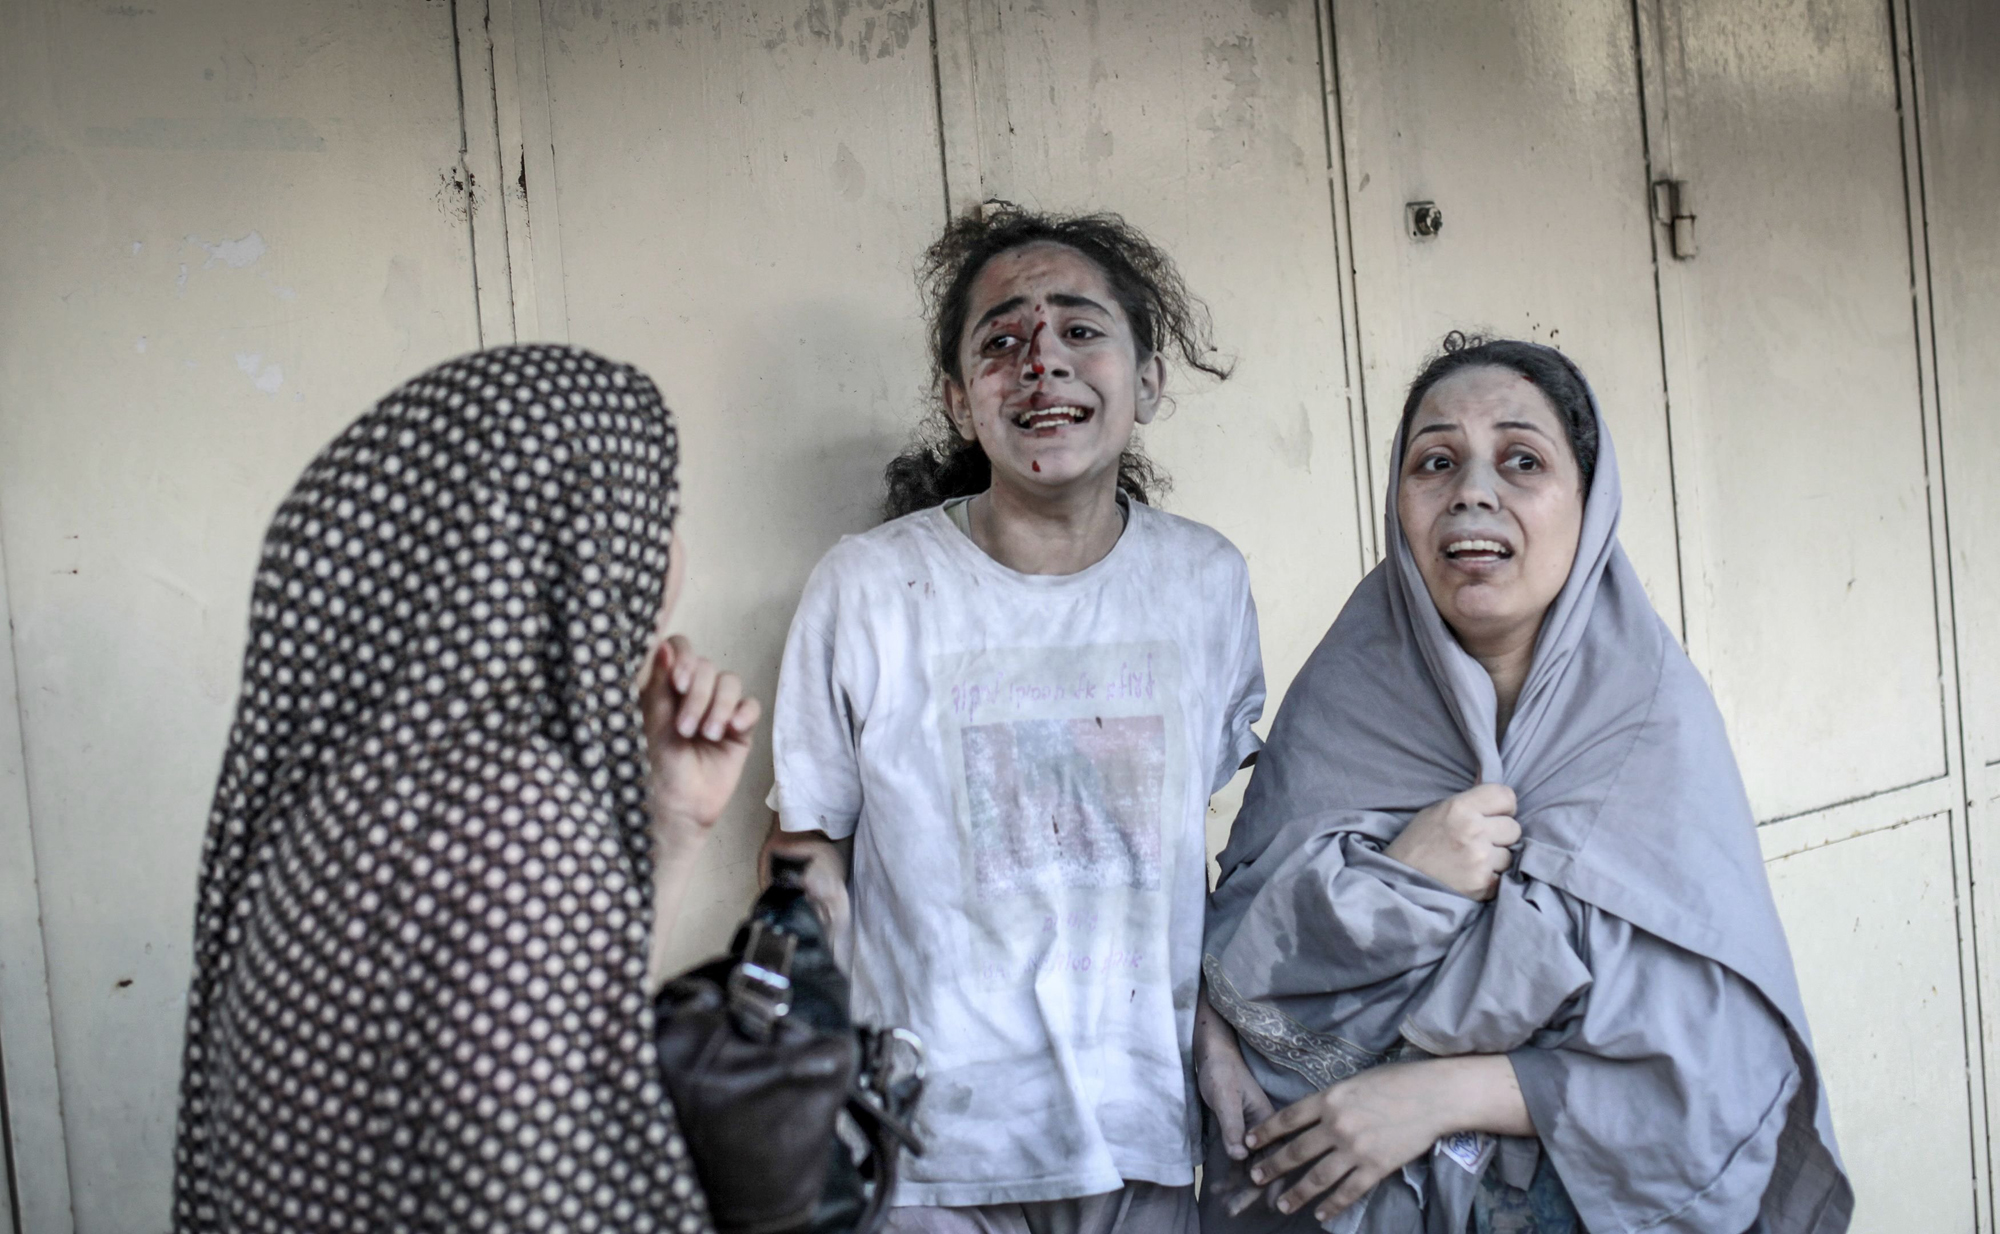 Palestinians evacuate a victim from a building that was hit by an Israeli strike in Gaza City, July 20, 2014.